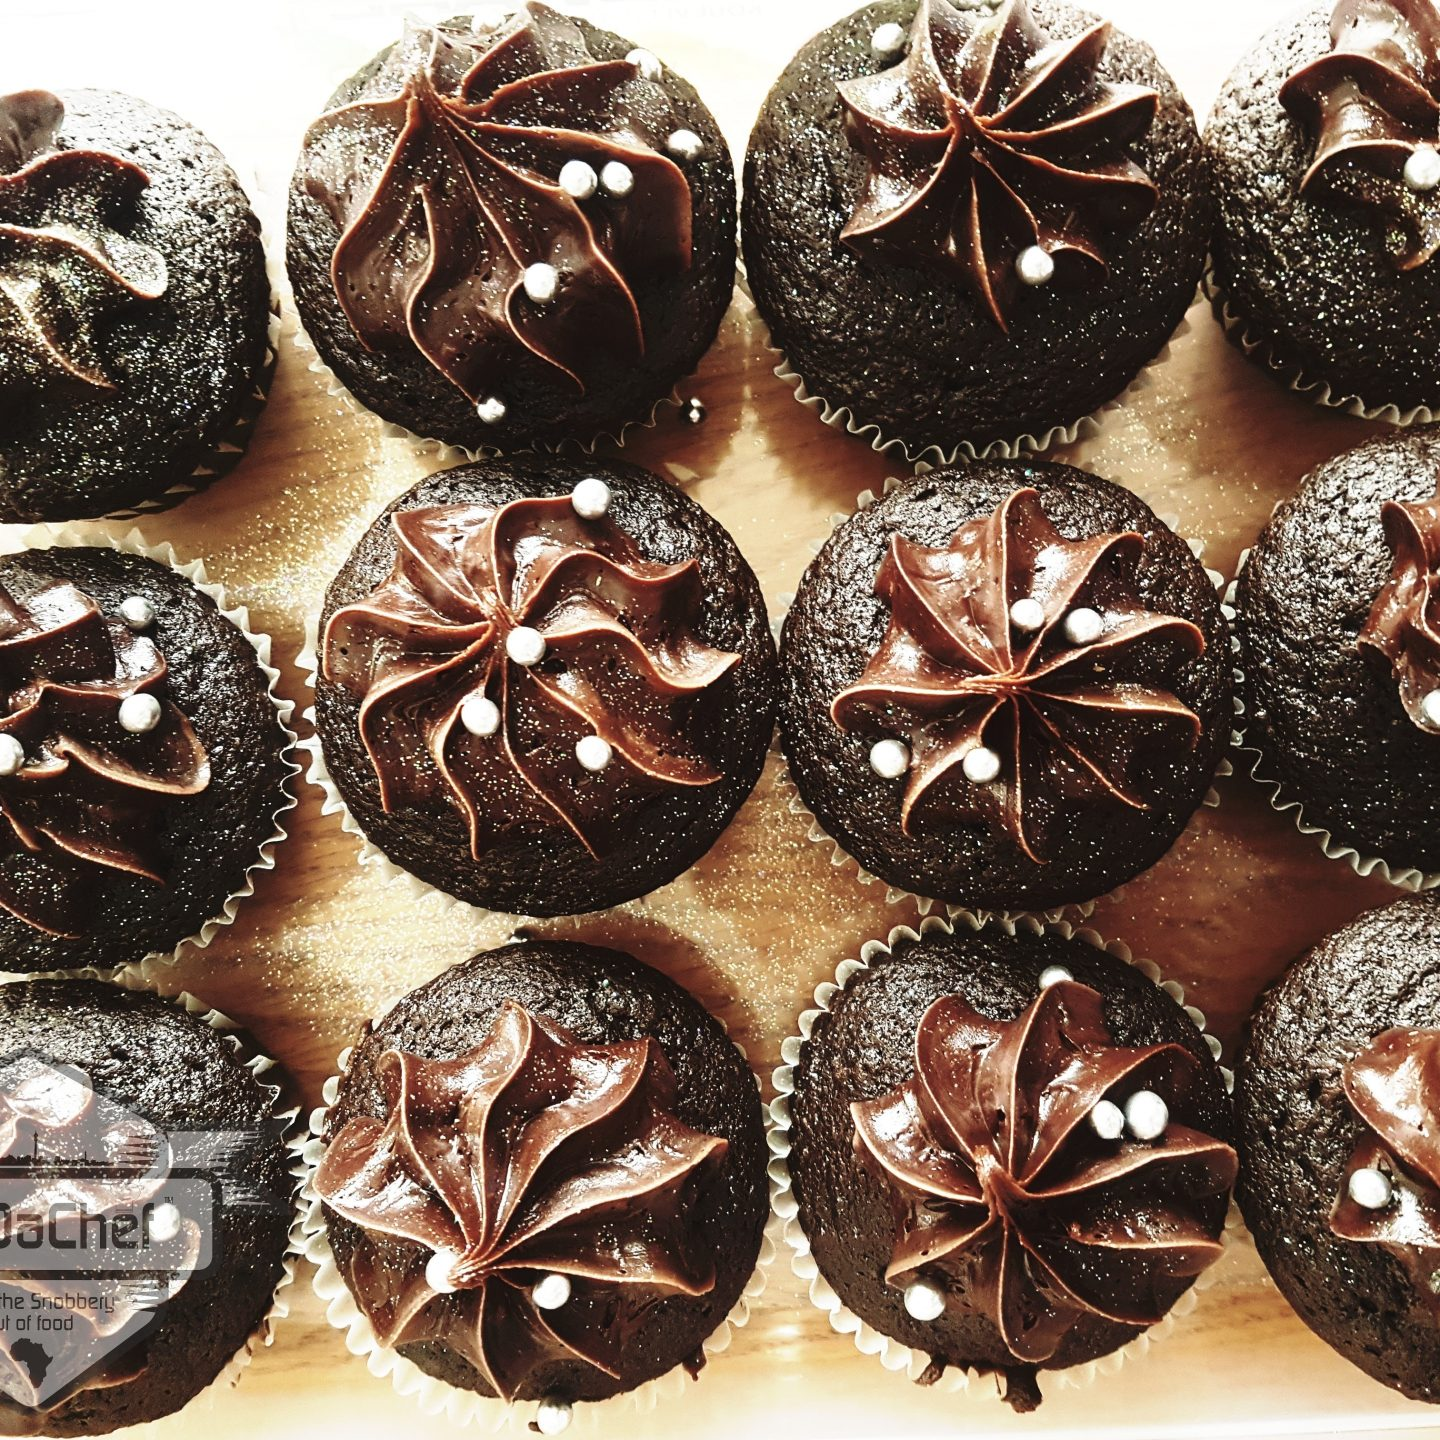 World Baking Day with LesDaChef's Dark Chocolate Cupcakes!